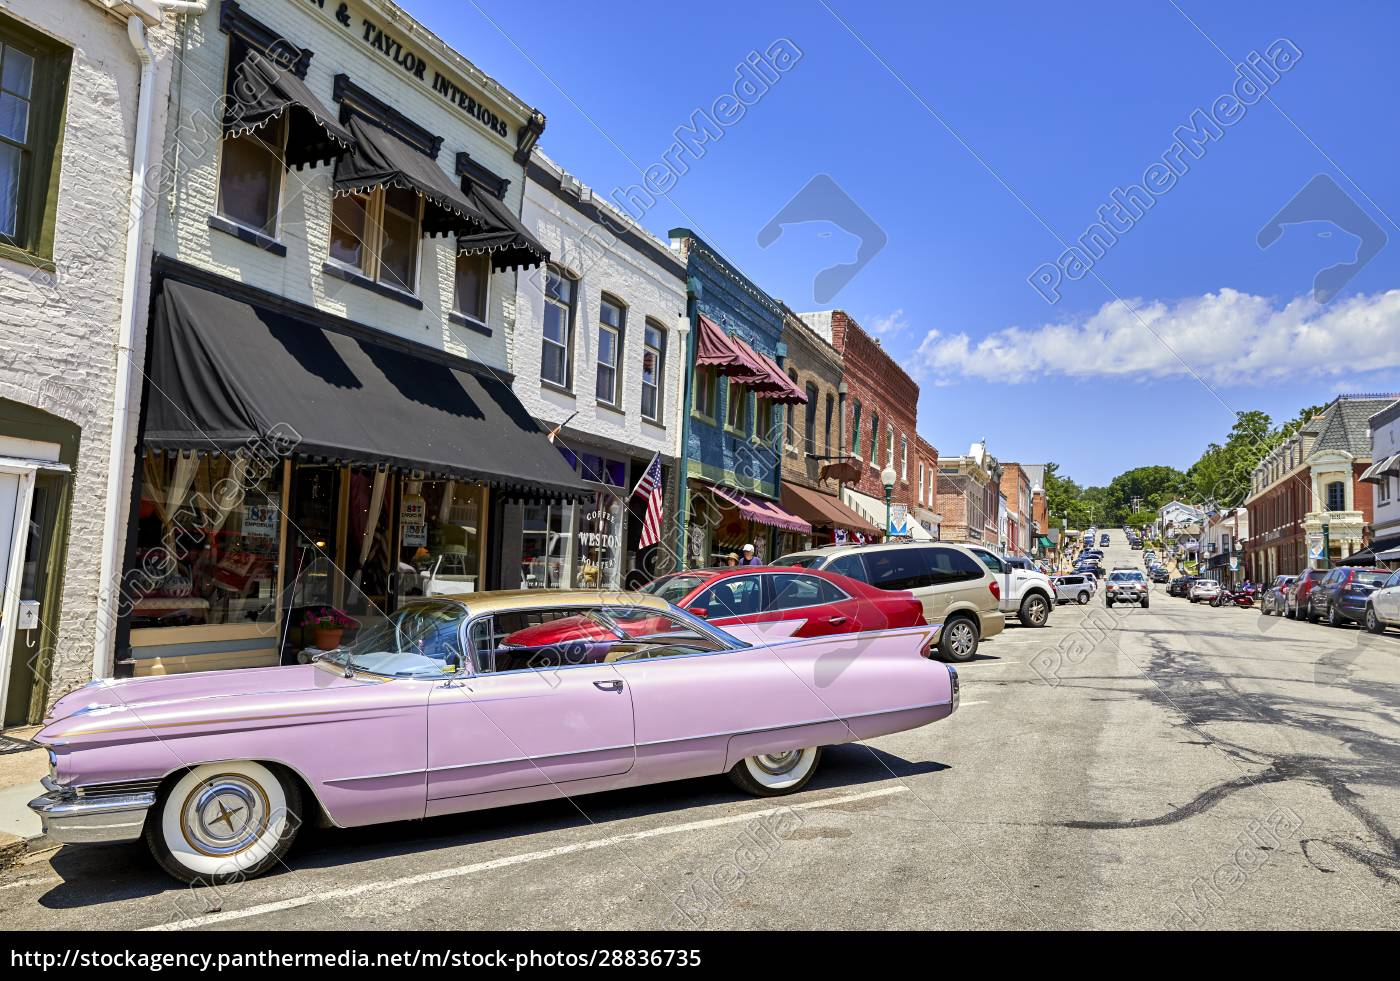 a, pink, 60s, cadillac, in, the - 28836735